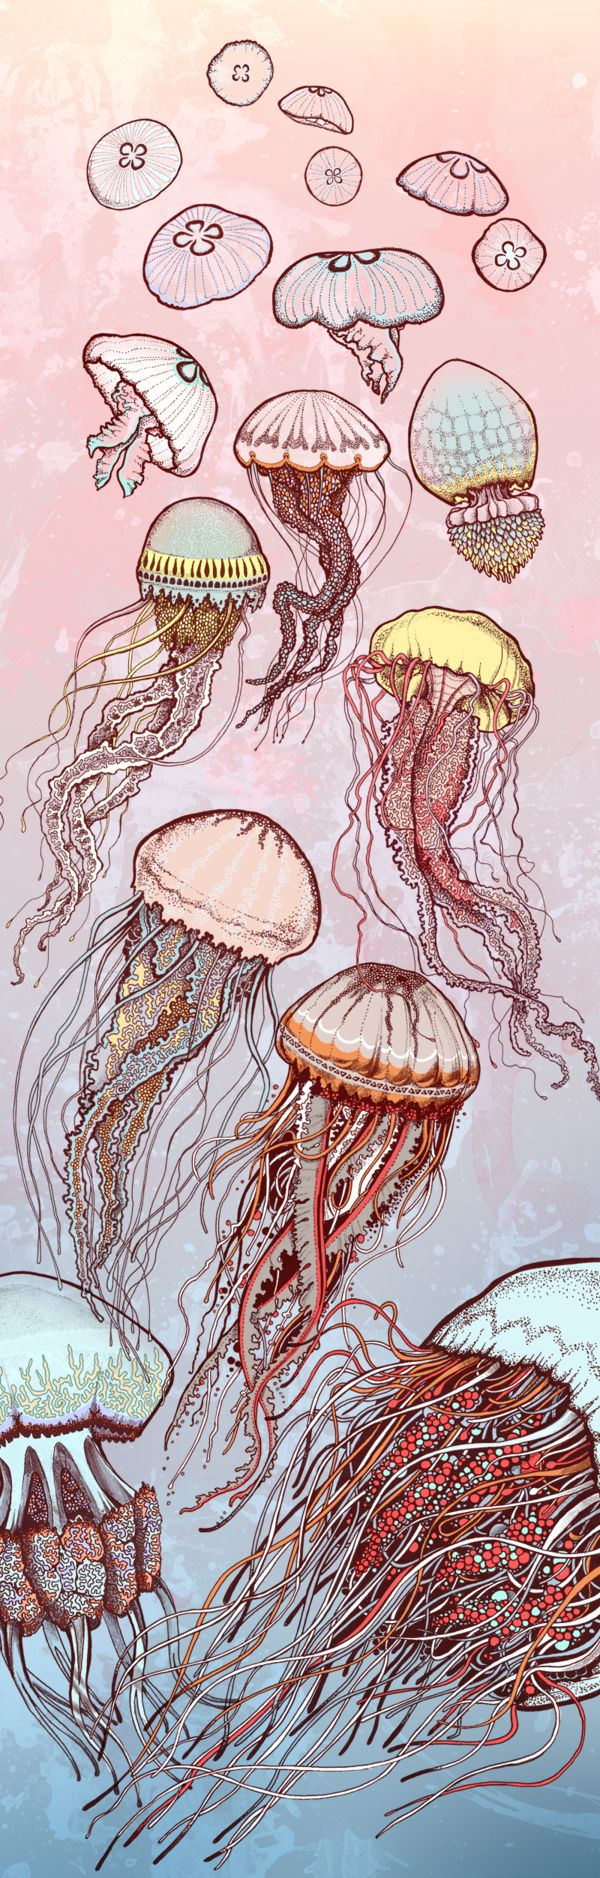 """""""Under the Sea"""" by SFHD"""